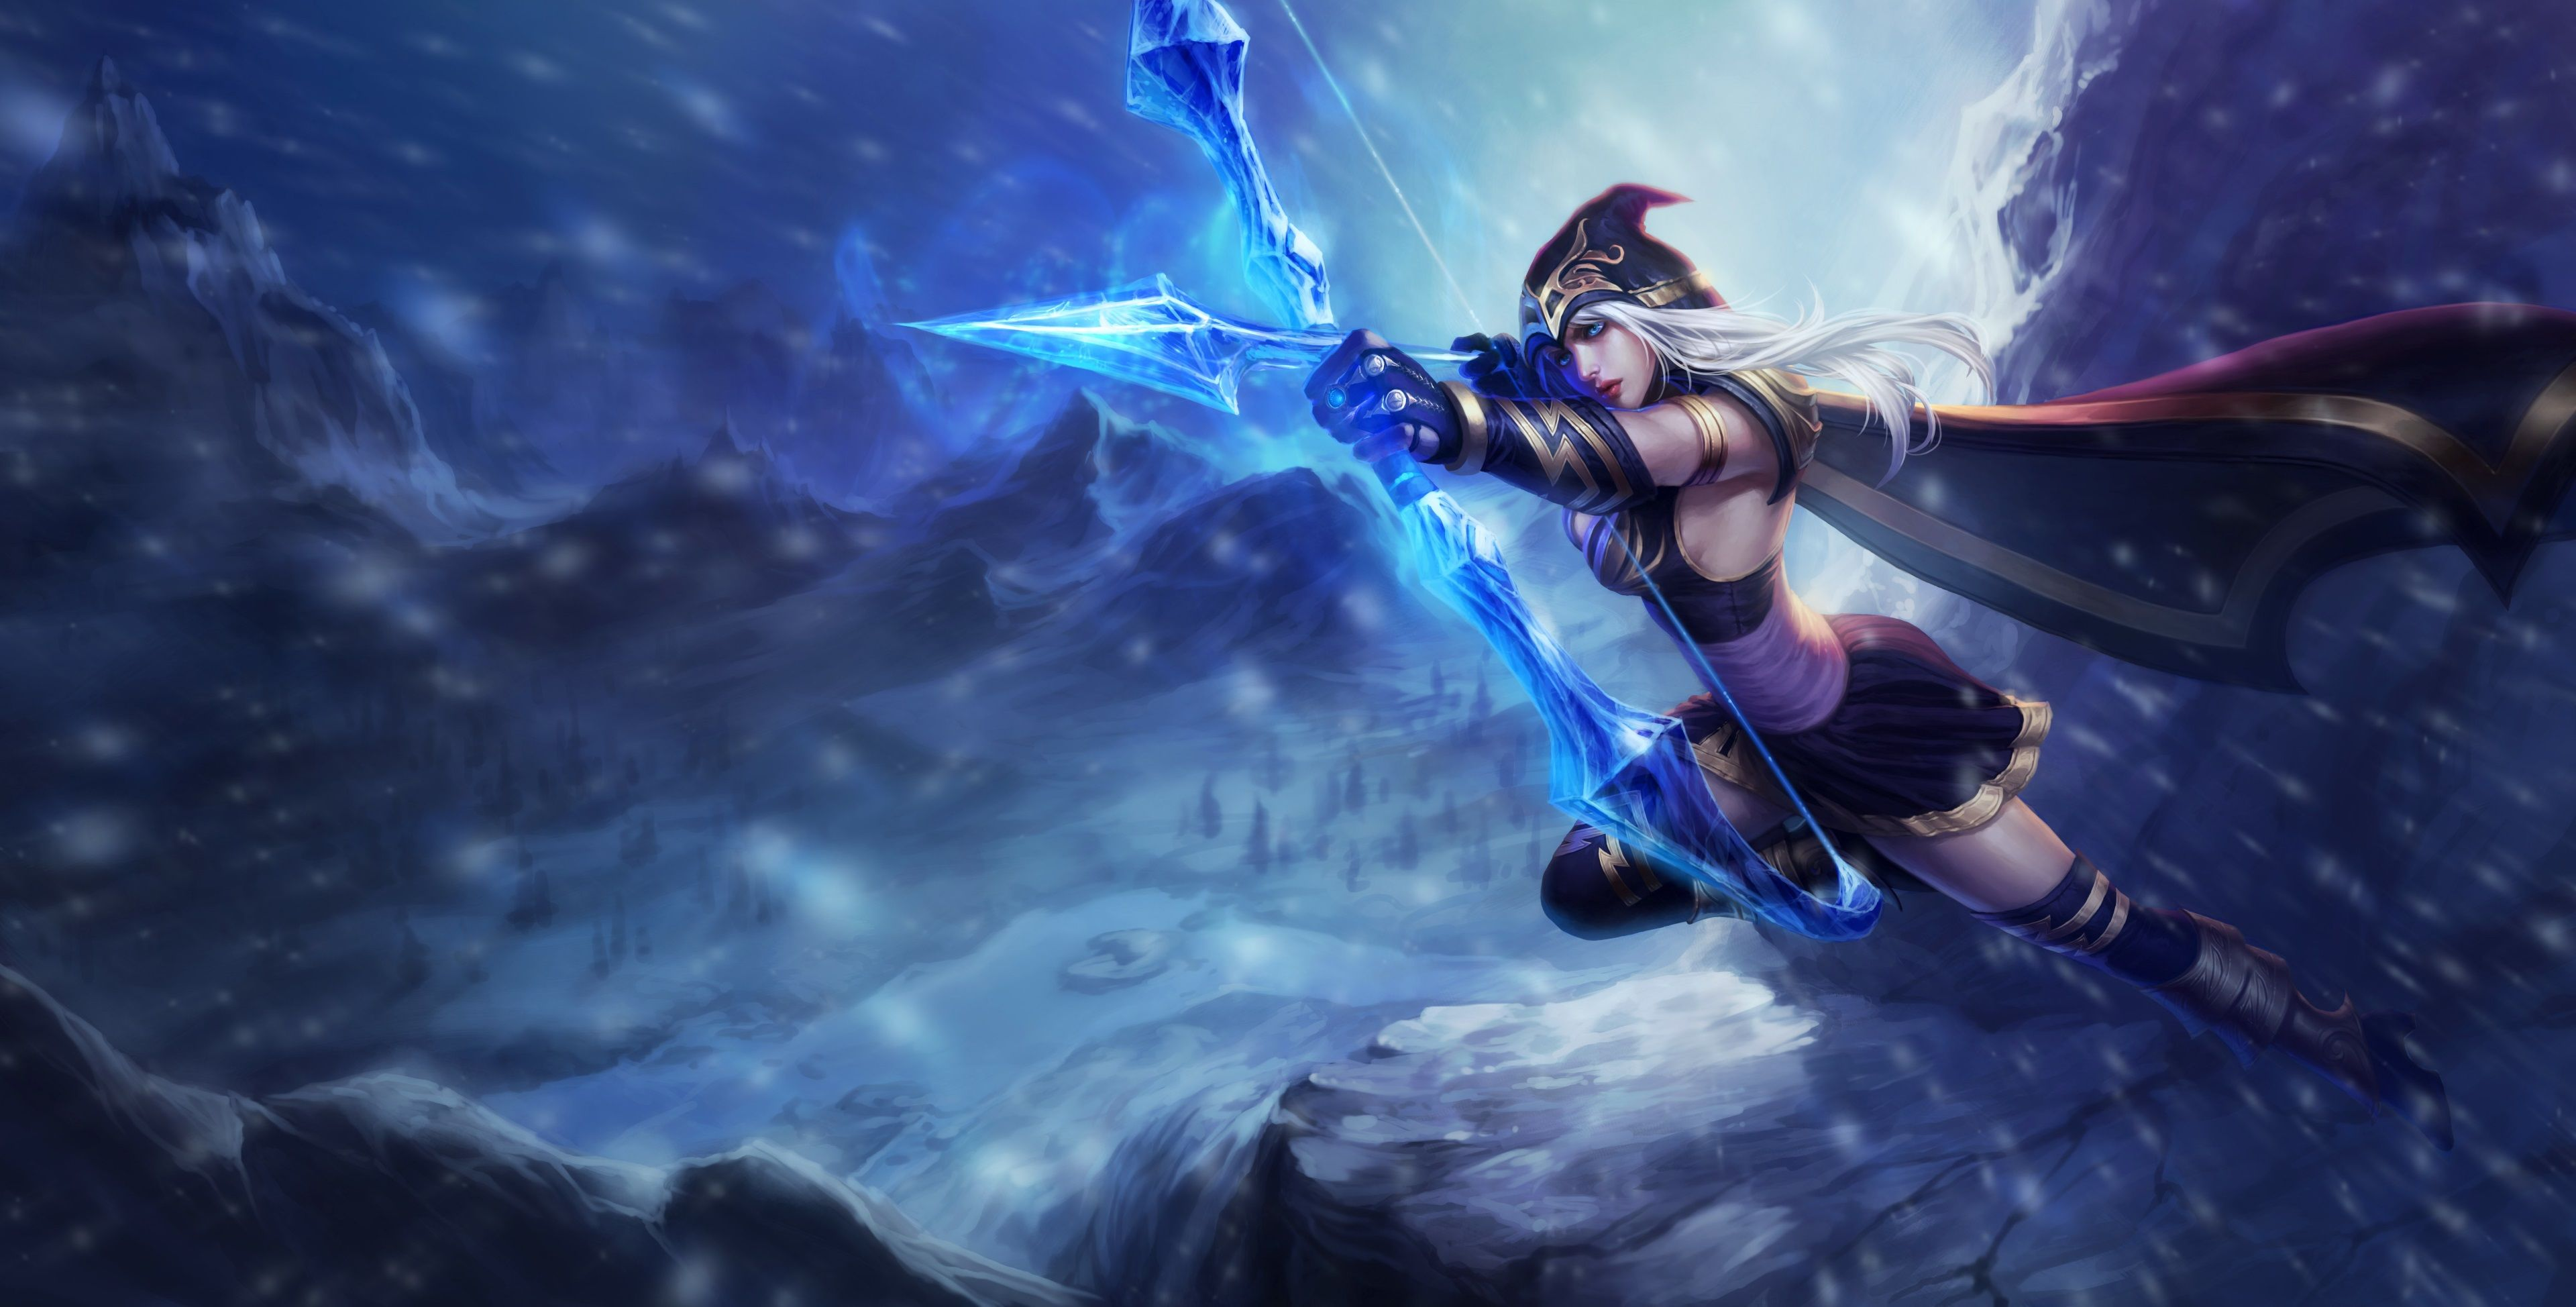 3840x1948 League Of Legends 4k Background Hd Wallpaper Lol League Of Legends League Of Legends Game League Of Legends